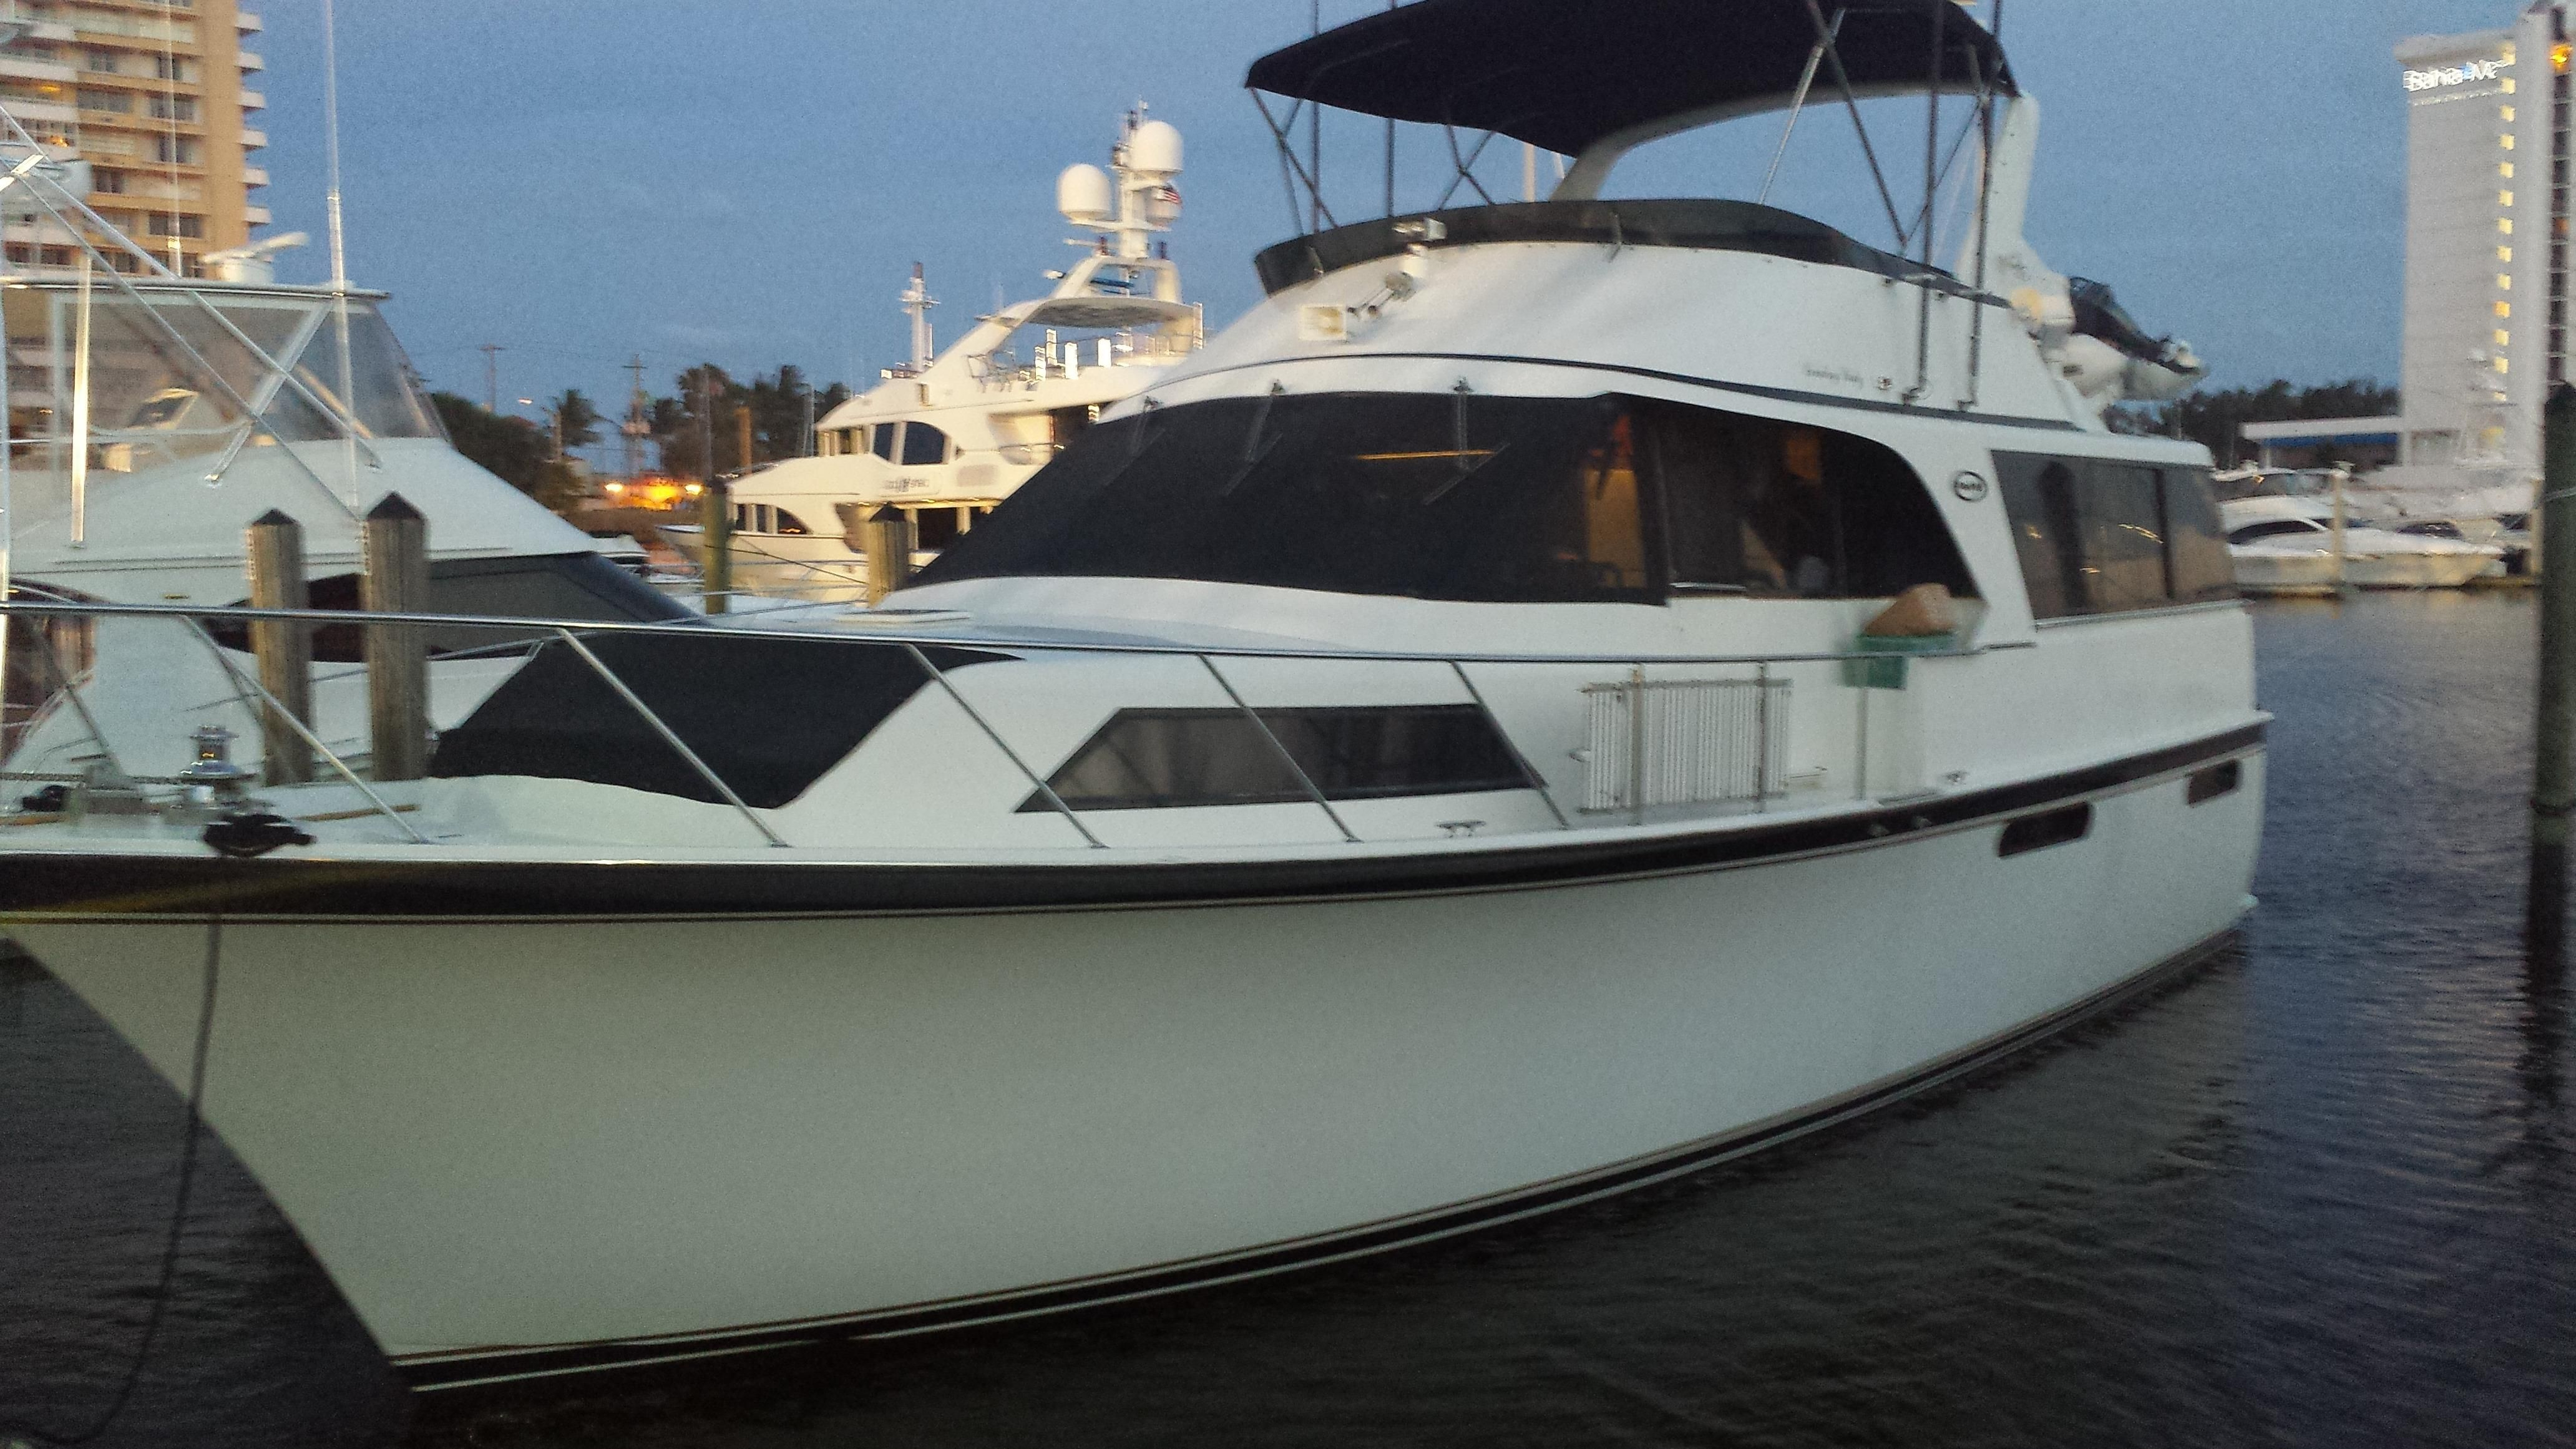 1989 ocean 48 motor yacht power boat for sale www